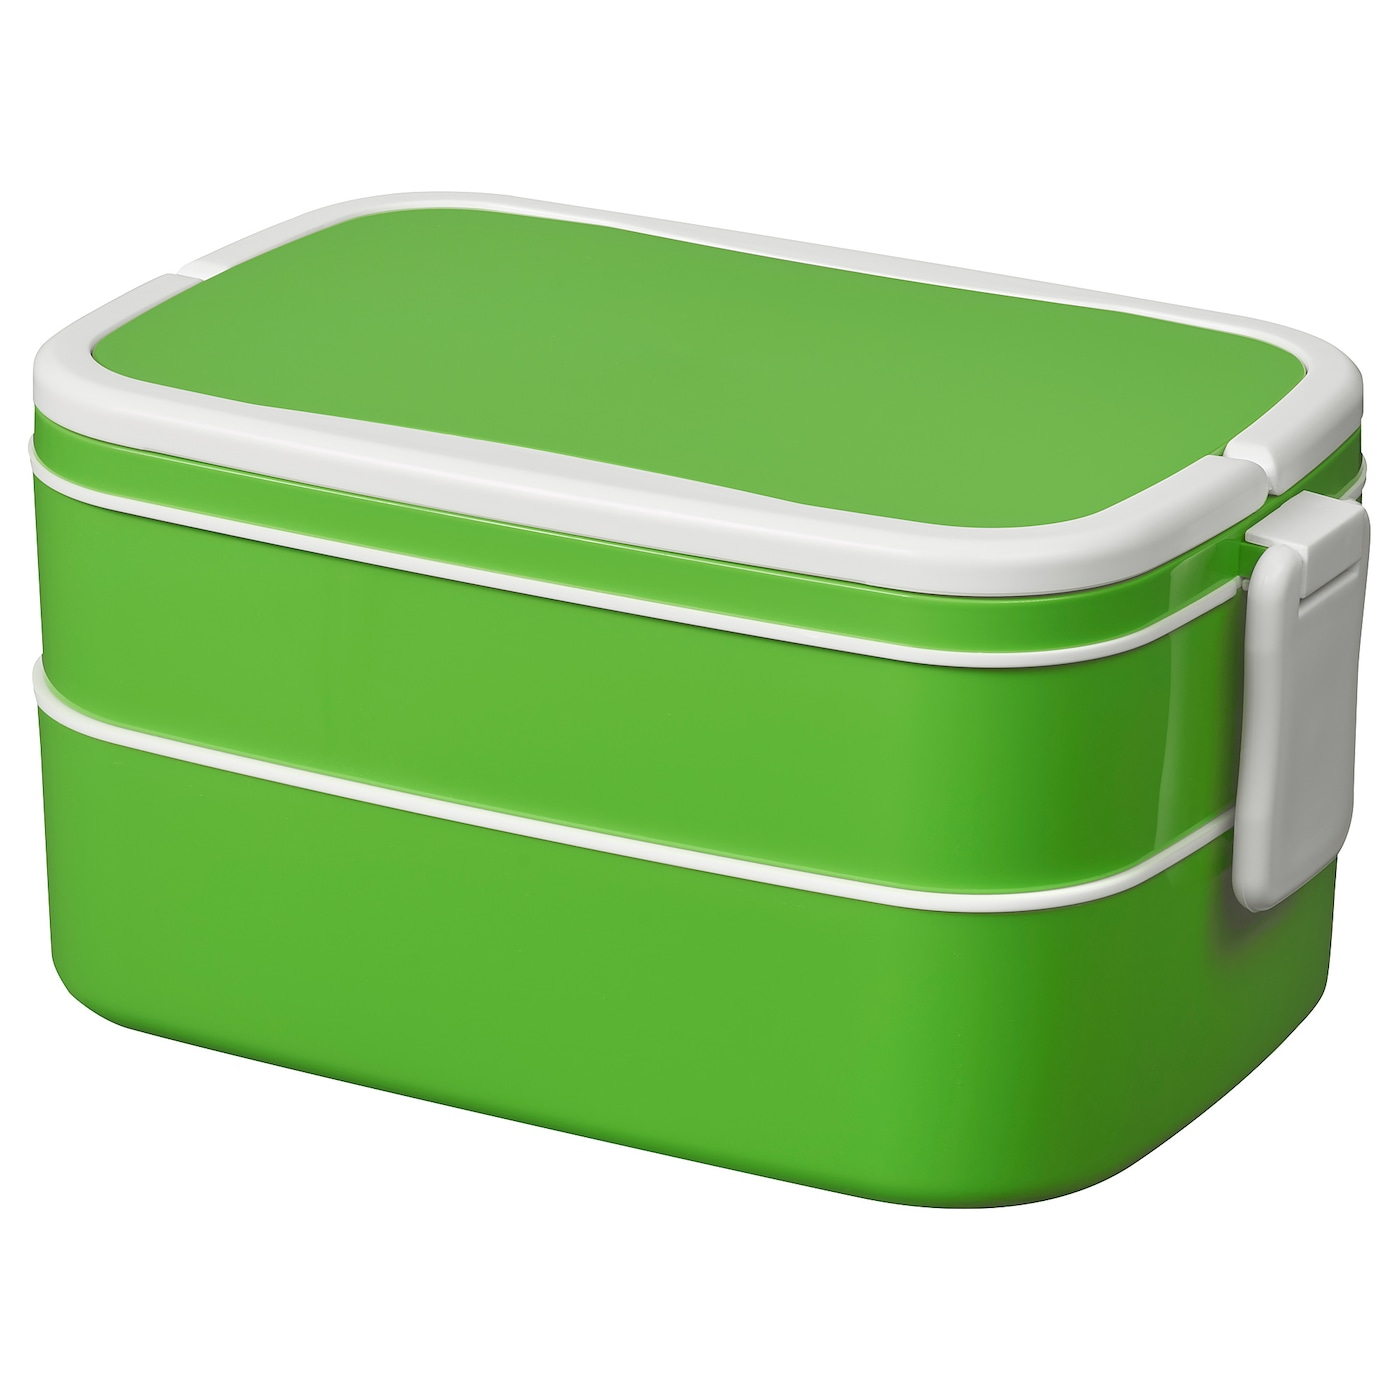 Food Storage Containers & Products